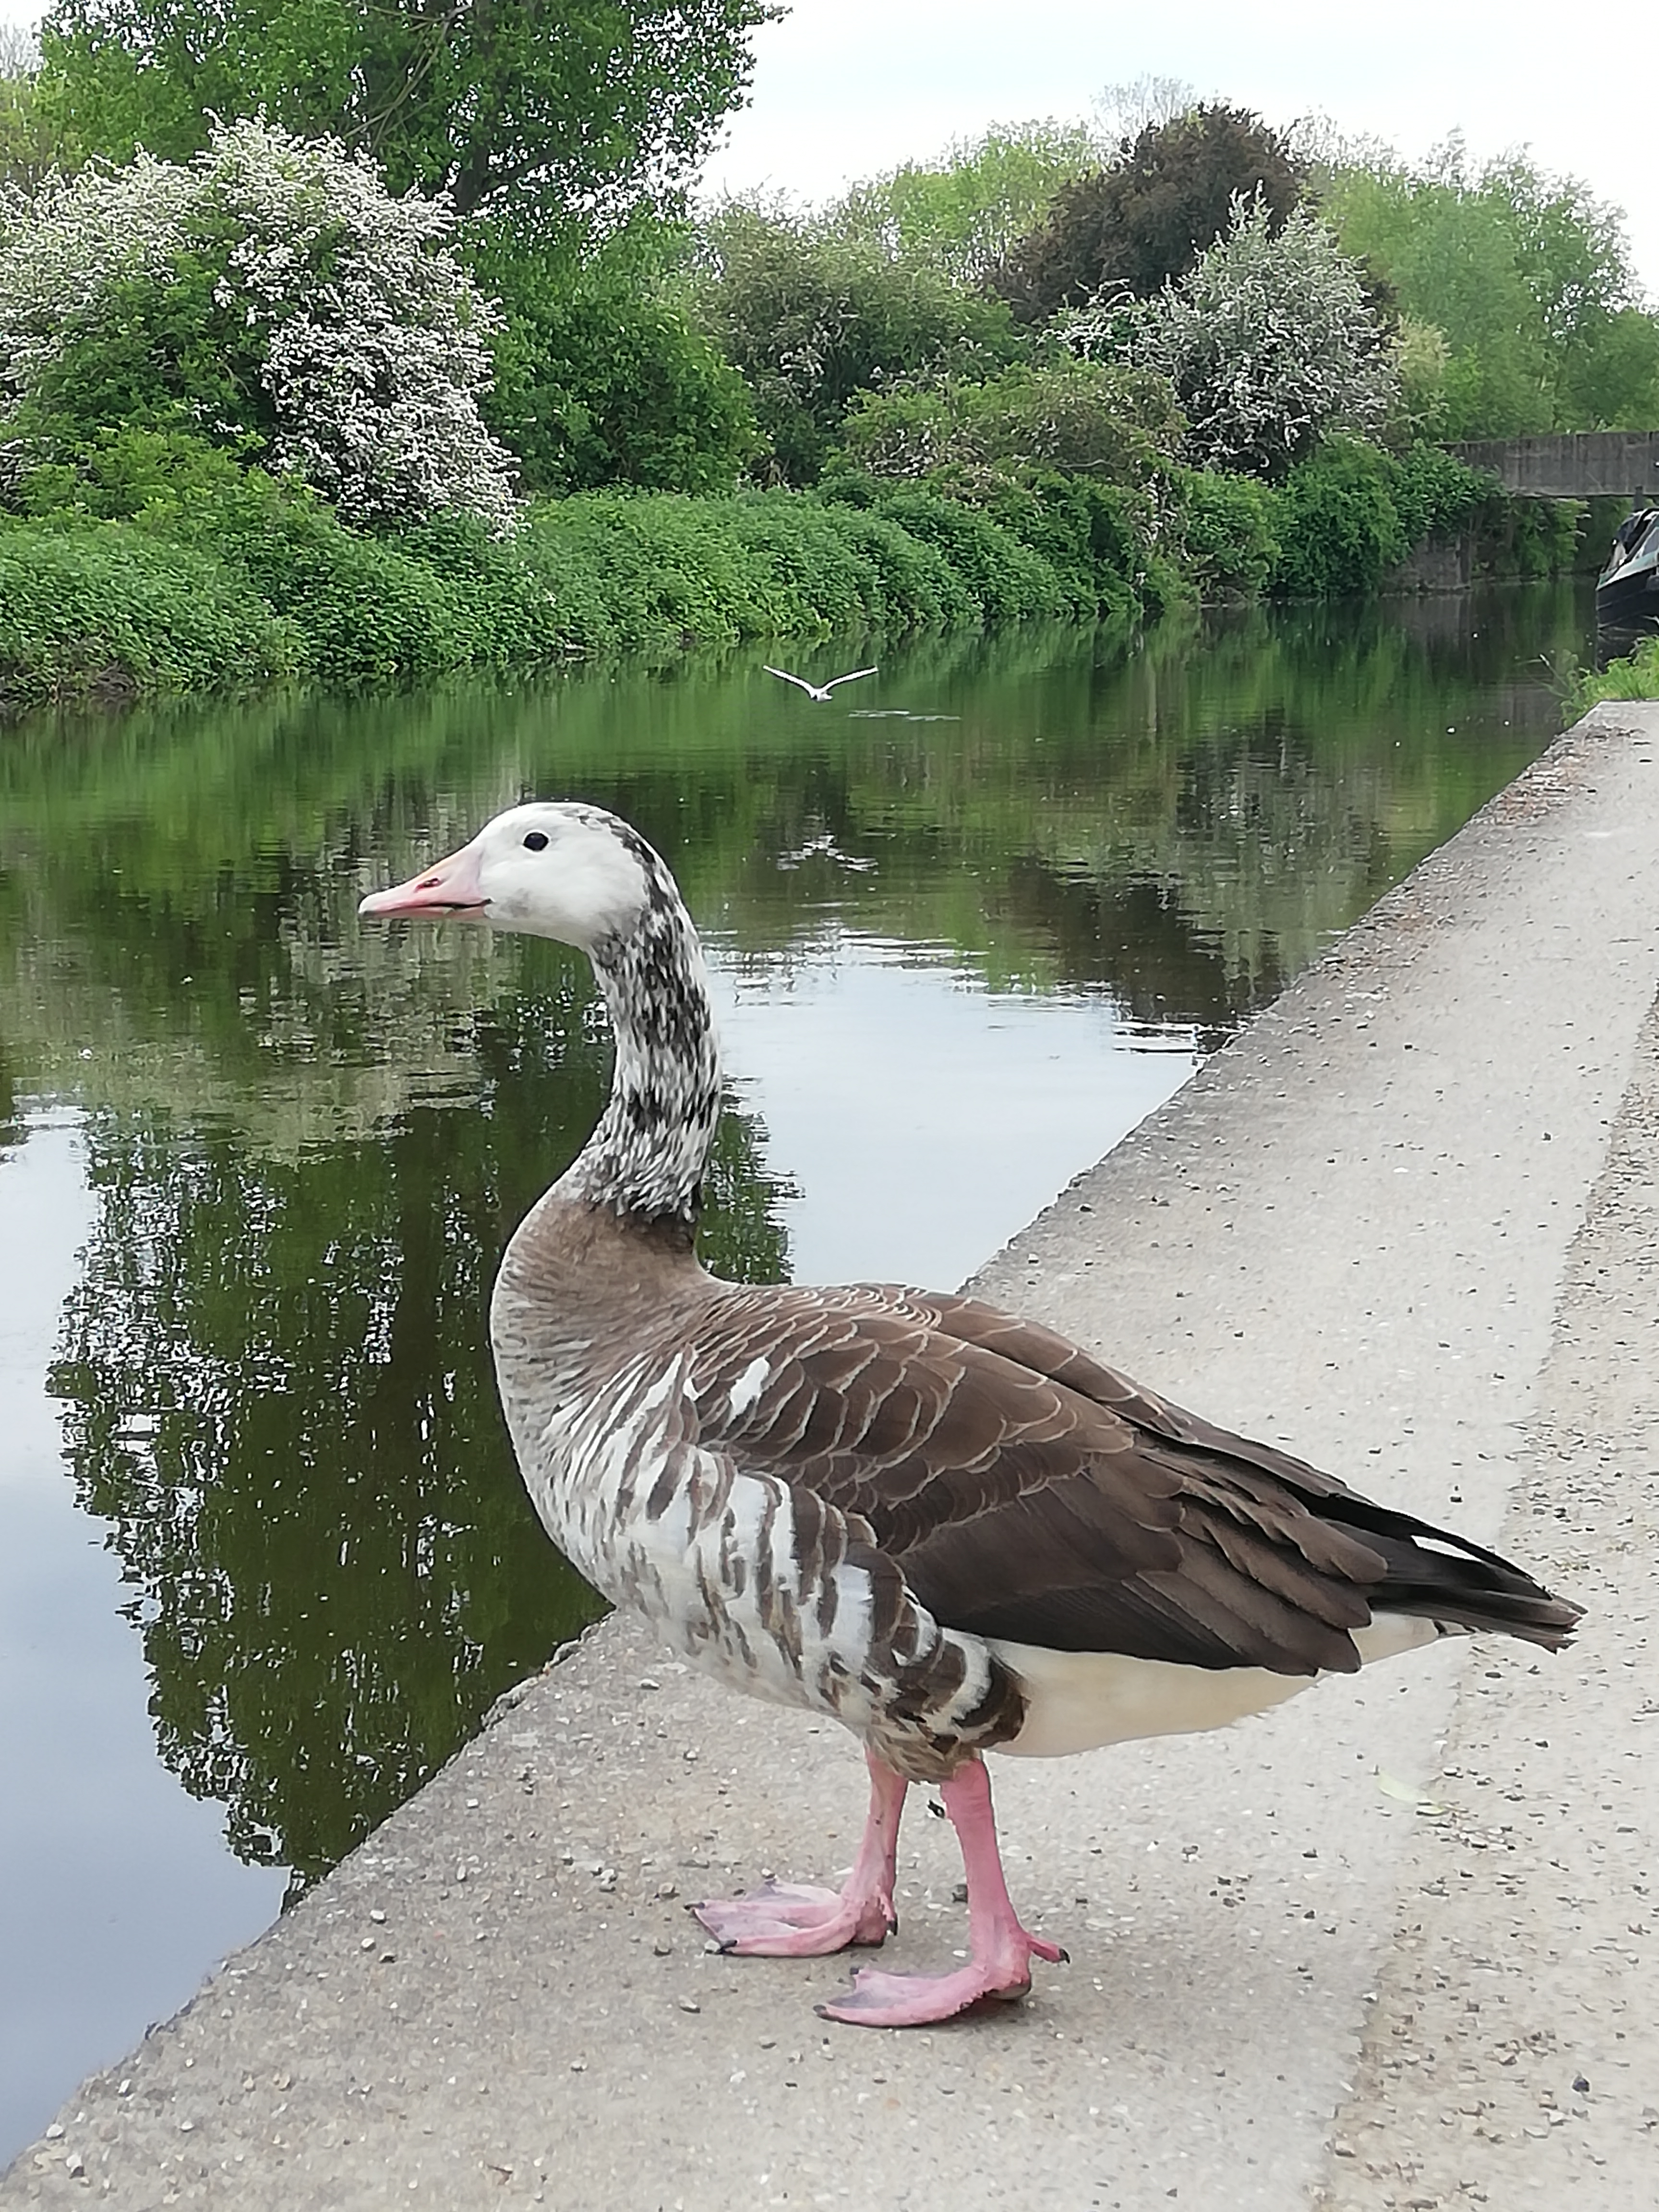 A unusually coloured Goose (White and Brown splattered) stood on the side of the canal